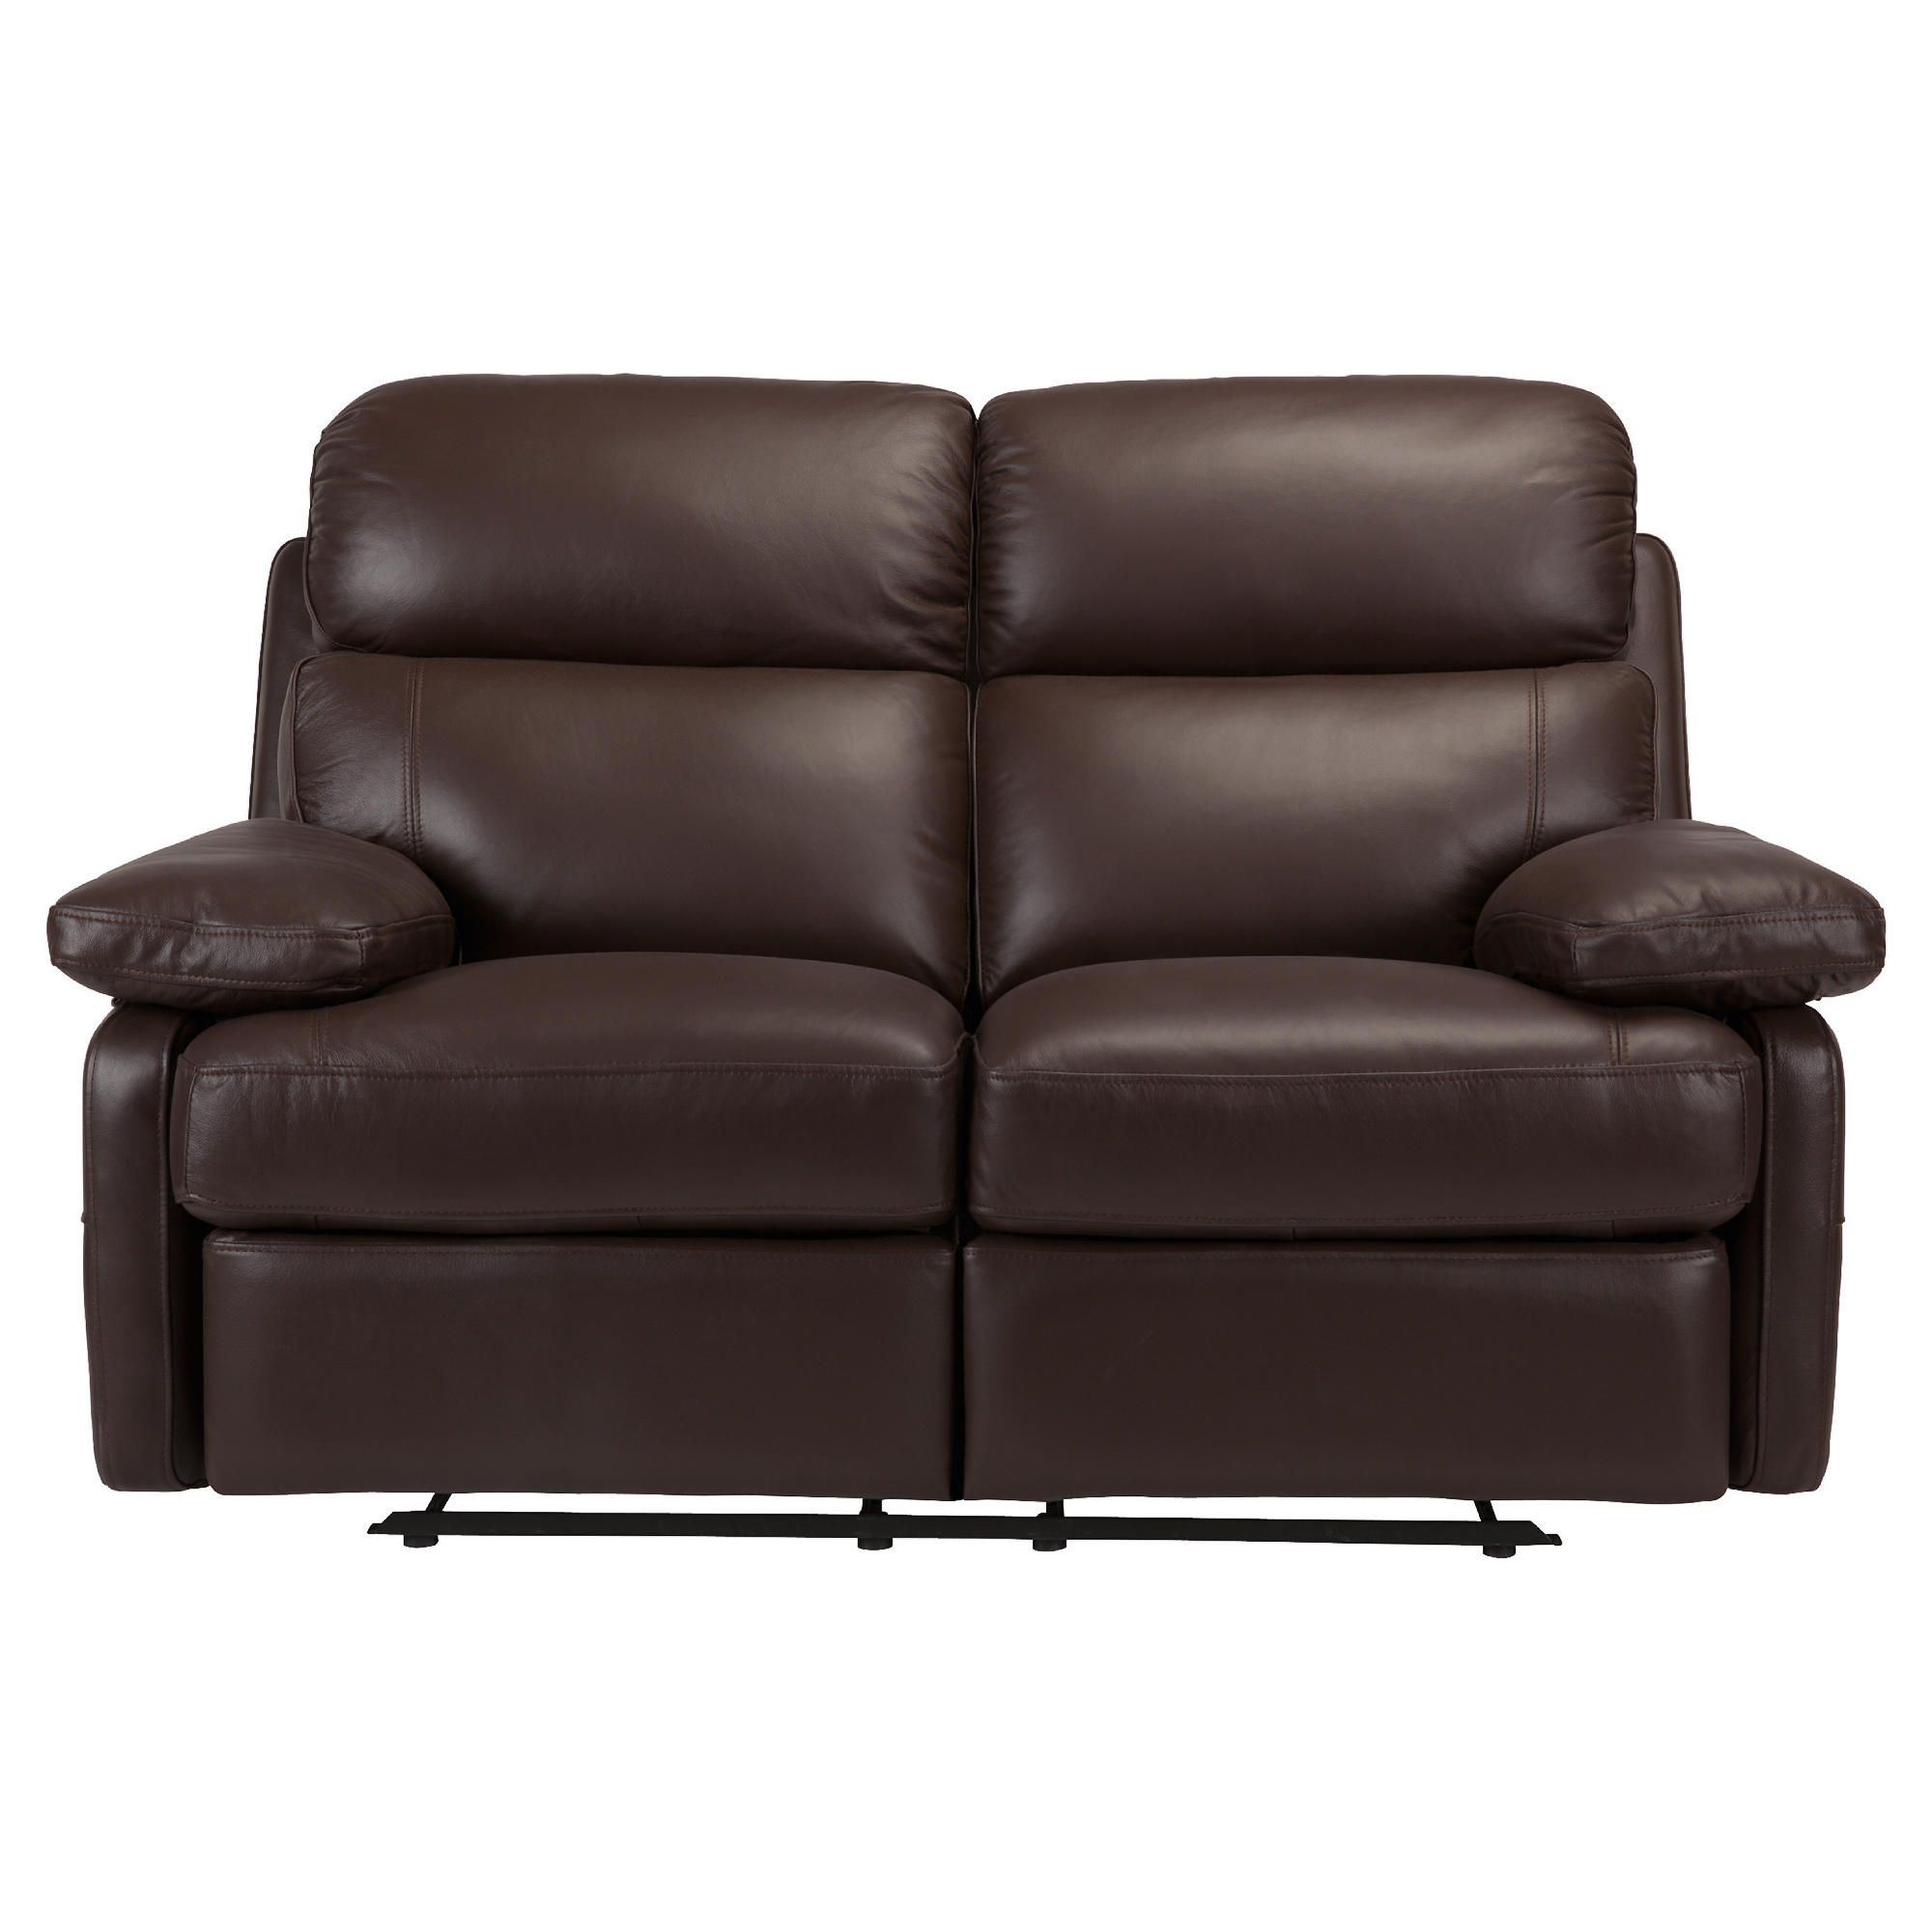 Cordova Leather Small Recliner Sofa Chocolate at Tesco Direct